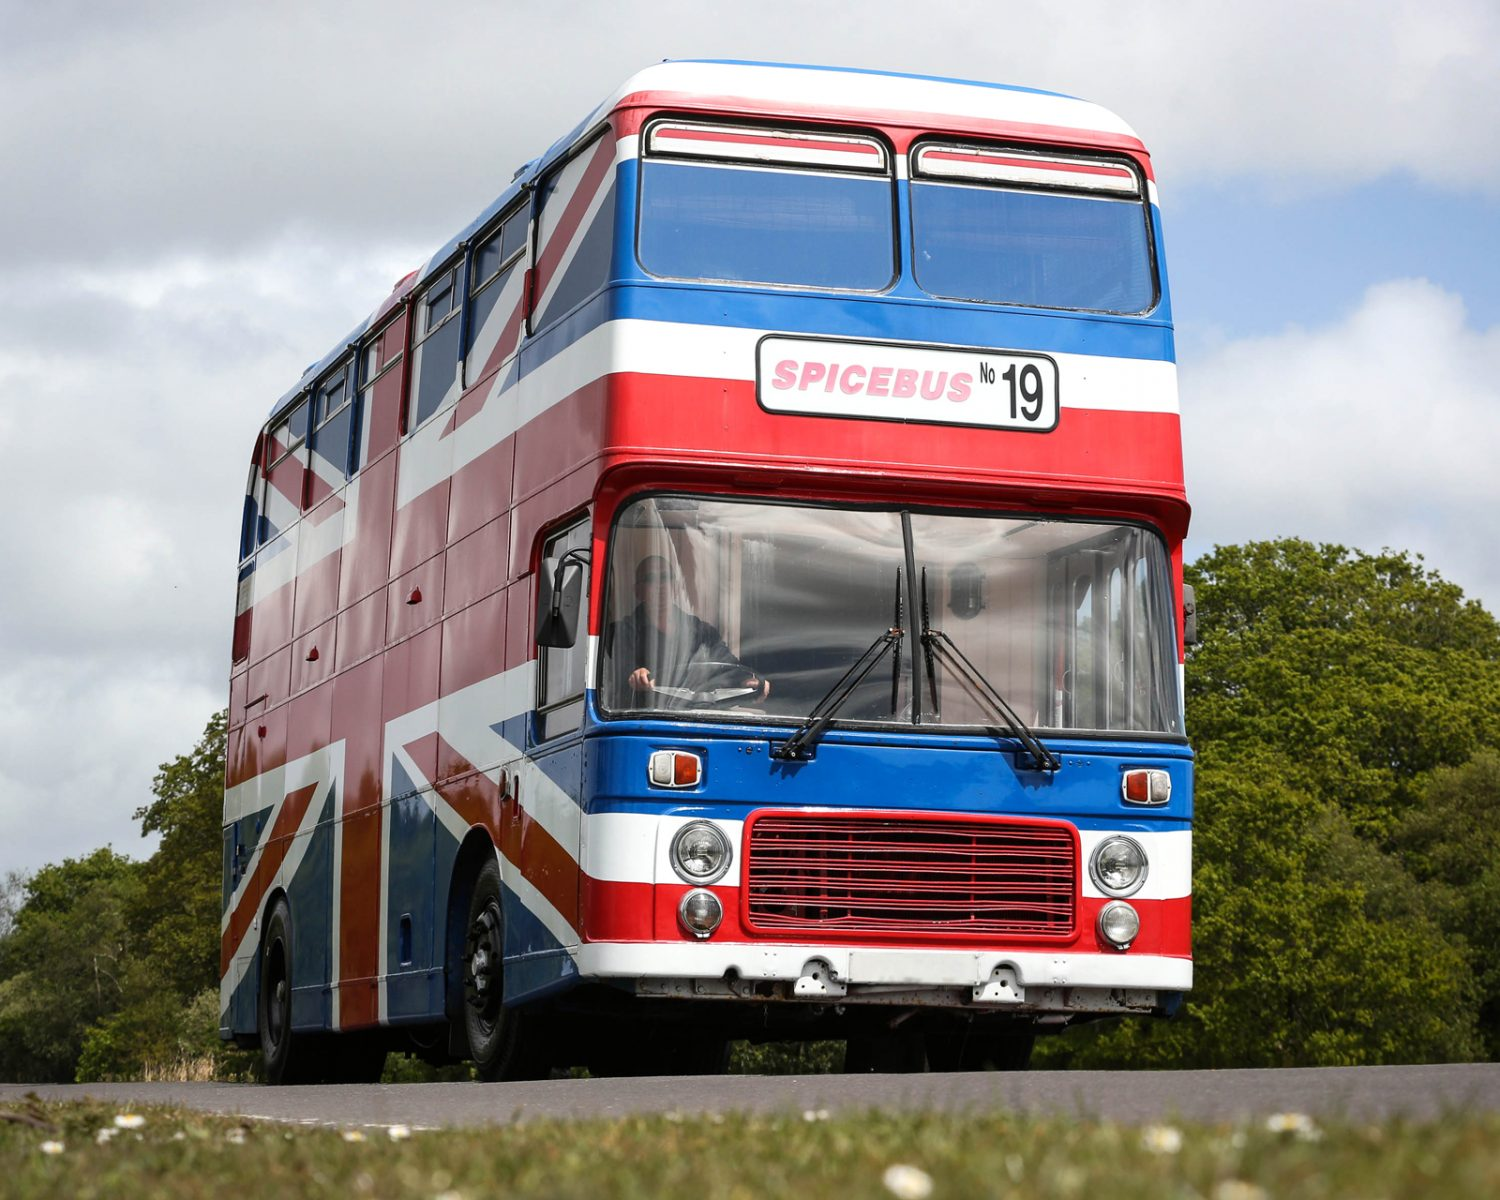 The Spice Girls Bus From 'Spice World' Is Now an Option for Your Bachelorette Party